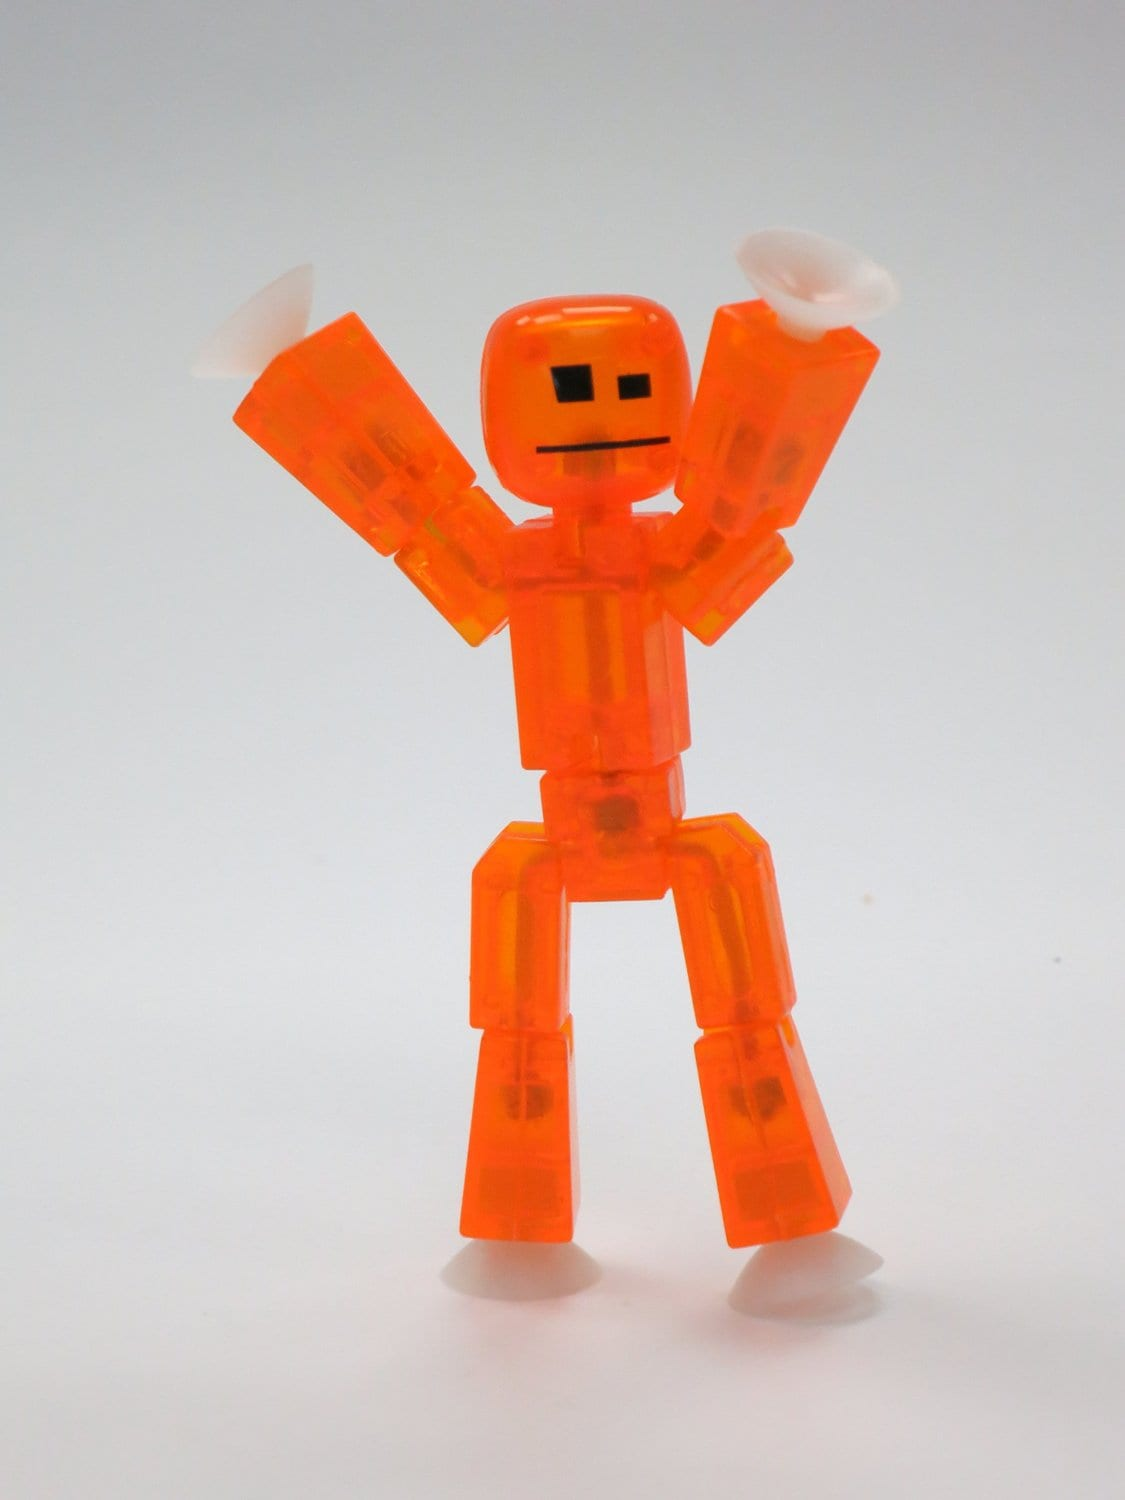 Toys And Co : Toy shed stikbot studio set orange white clear